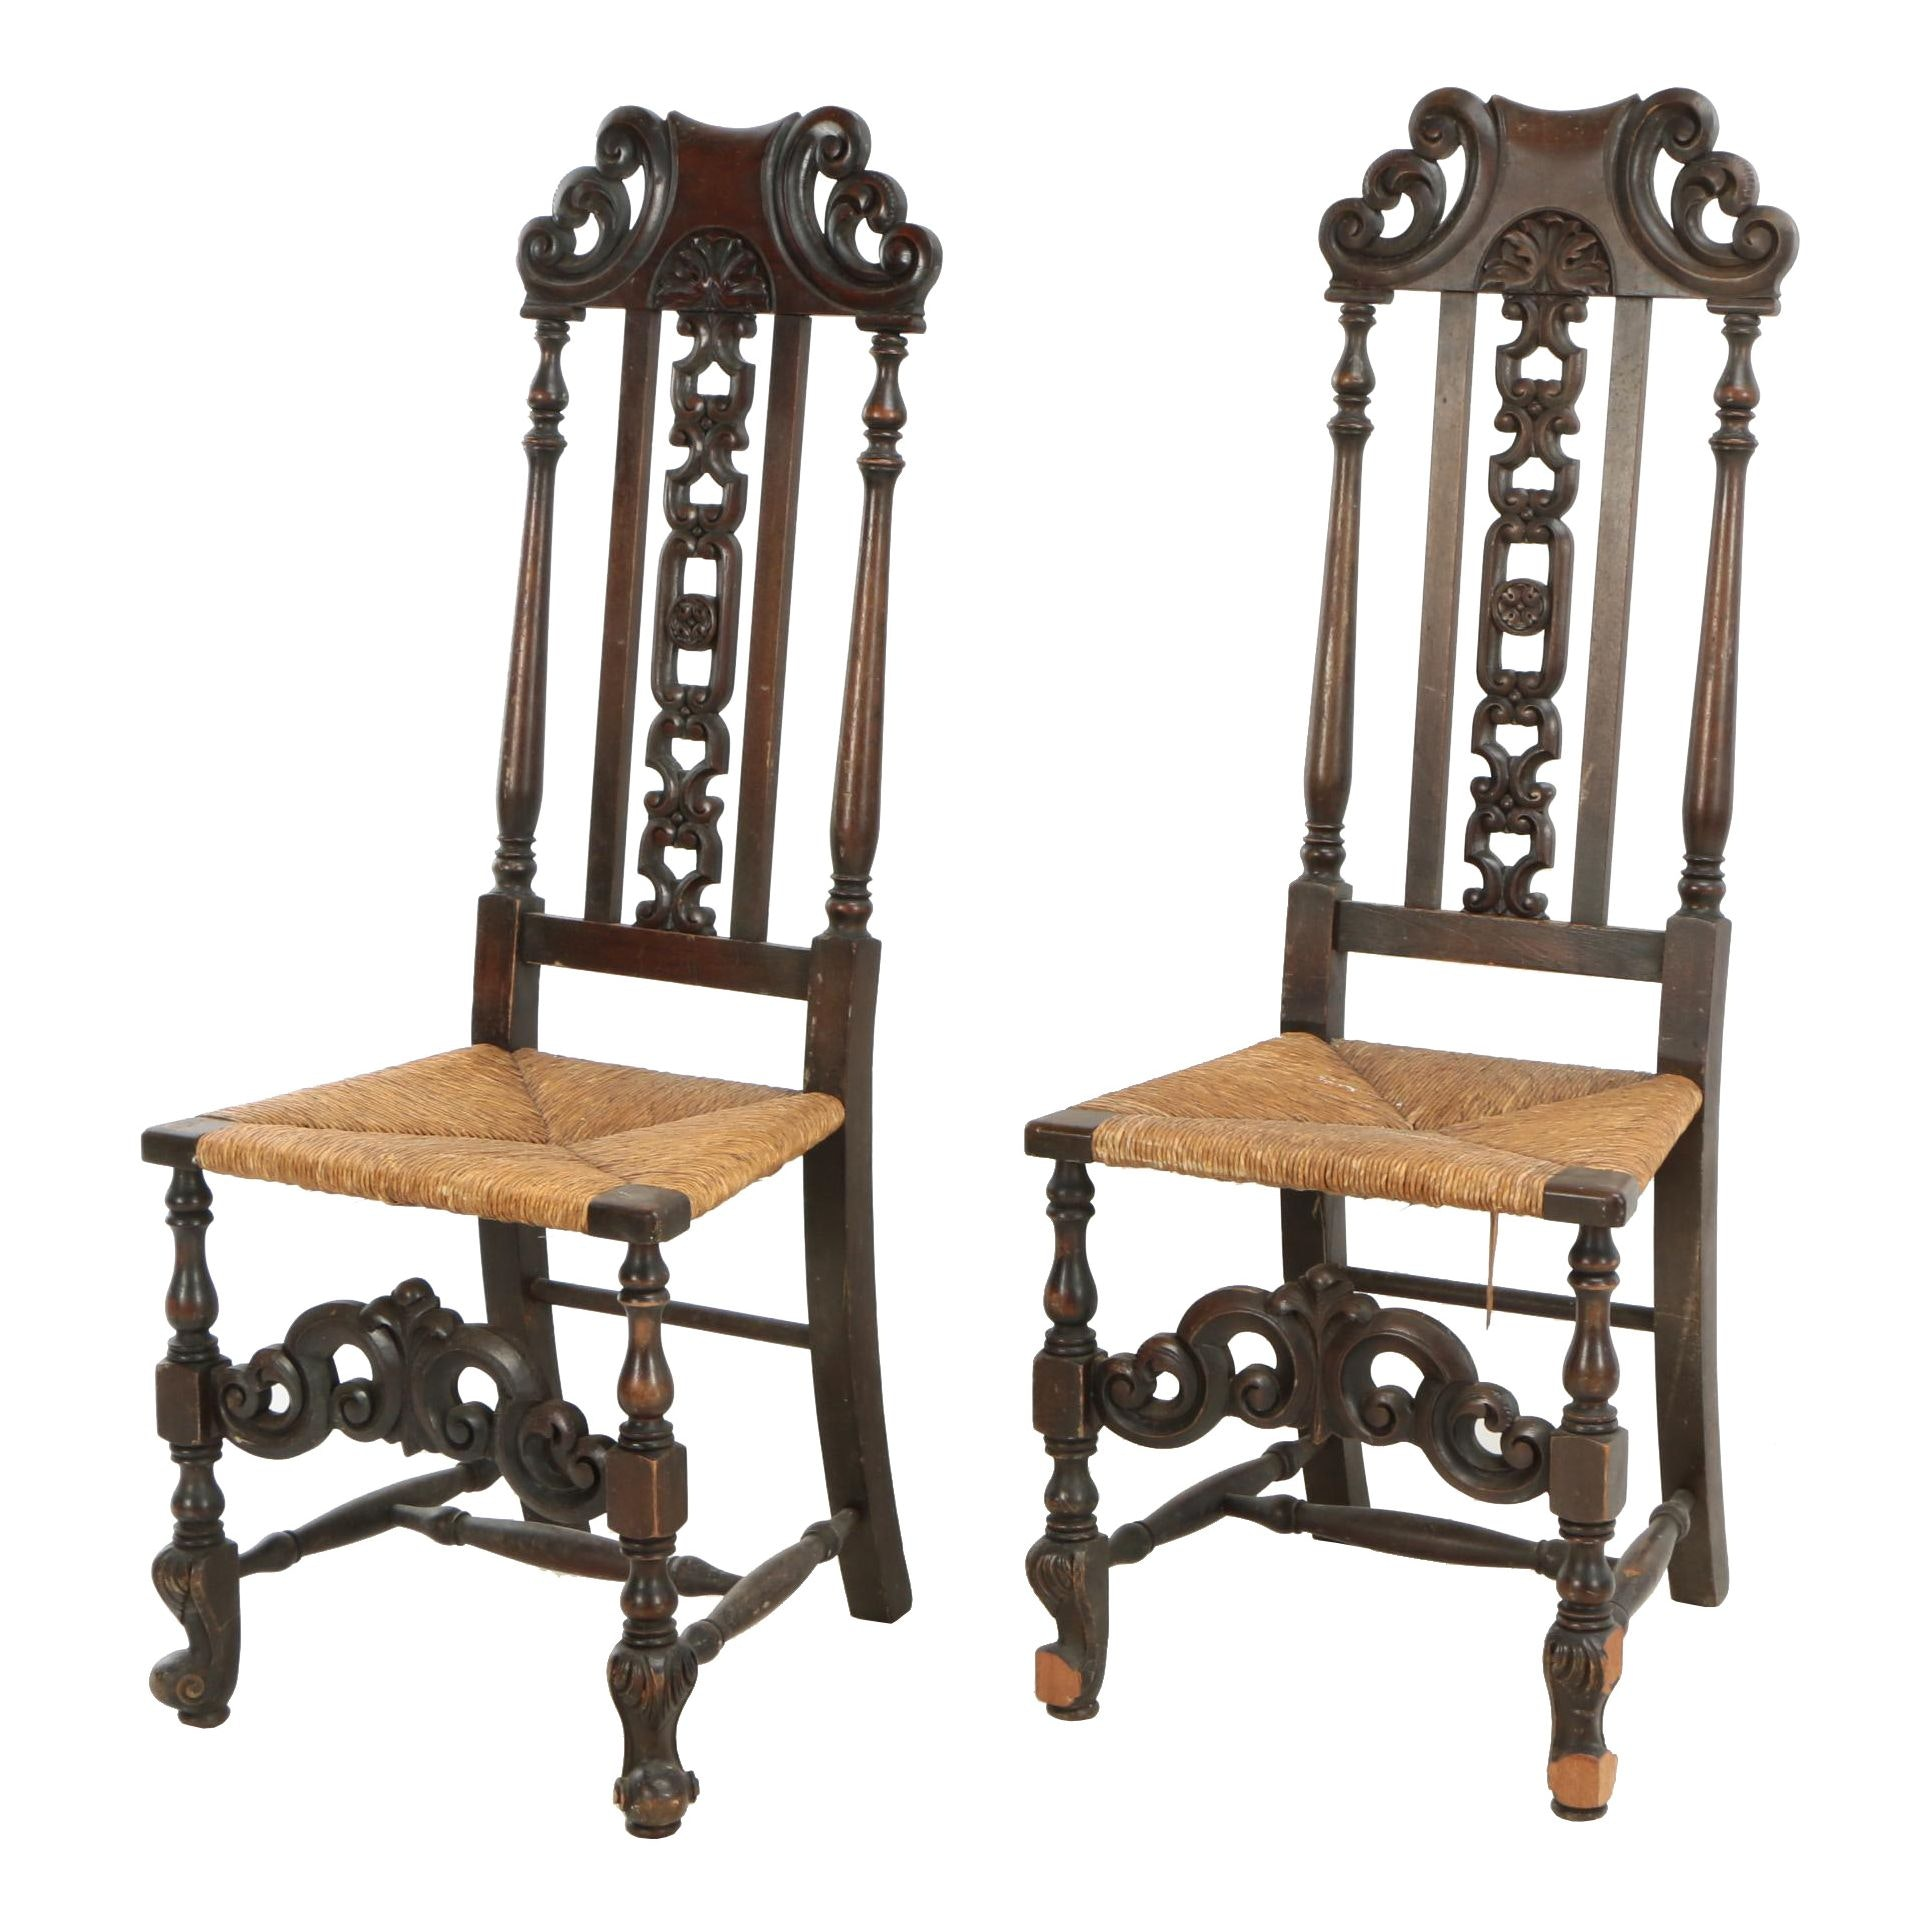 Pair of Jacobean Revival Walnut-Stained Side Chairs with Rushed Seats